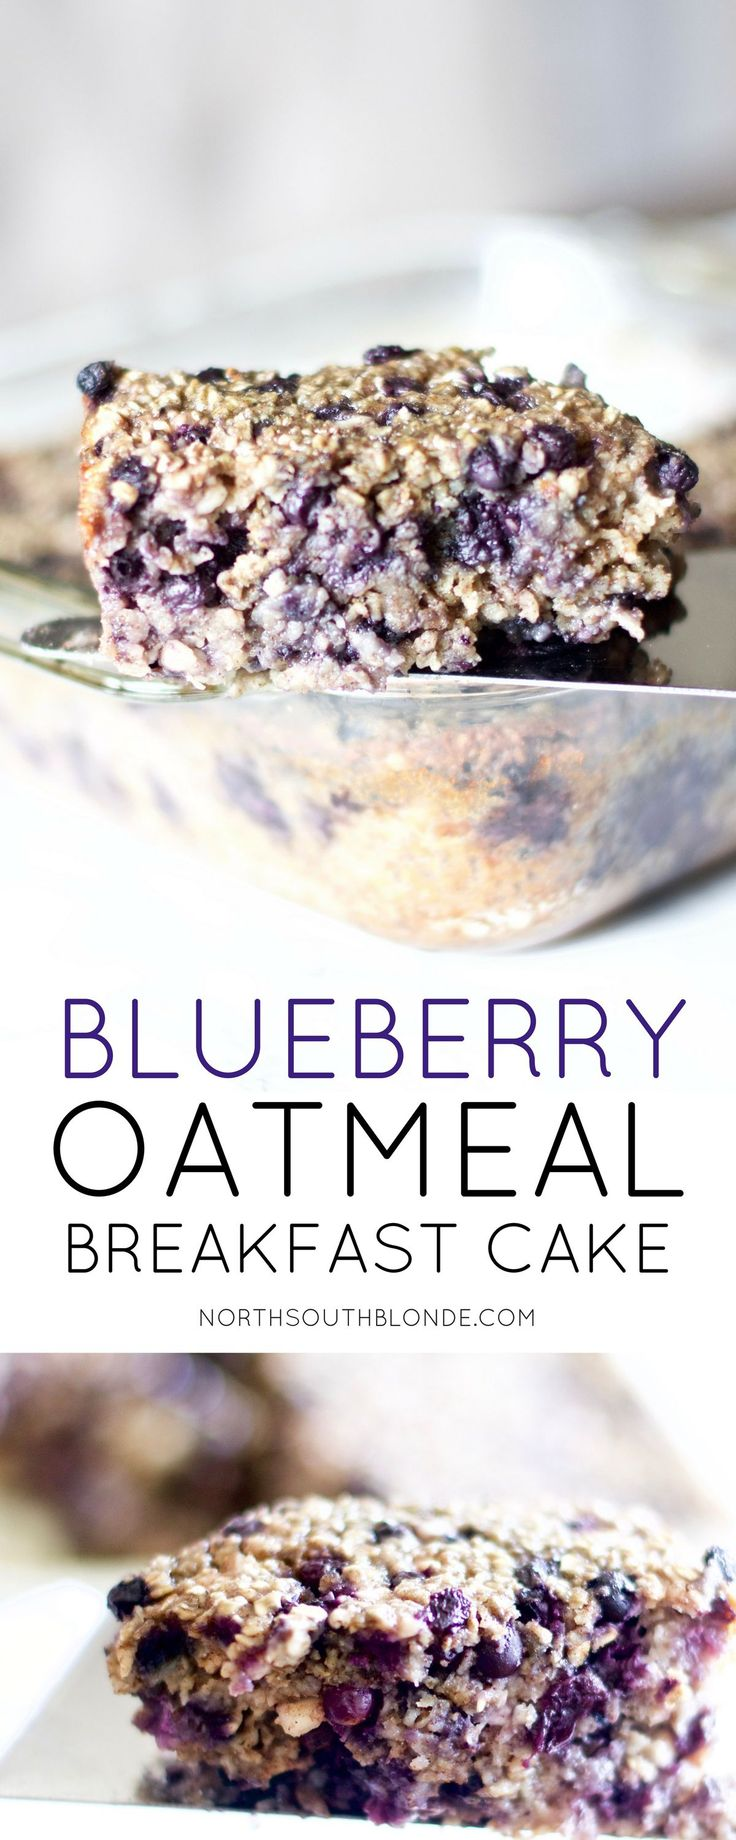 Naturally sweet, this healthy, baked blueberry oatmeal breakfast cake will be your go-to meal every morning, or pretty much for any time of the day. enjoy the melt-in-your-mouth warm, crisp oats with an explosion of blueberries. It will feel like dessert for breakfast – and you will reap the benefits. Gluten-Free | Baby Food | Toddler Food | Organic | Nutrition | Nutritious | Clean Eating | Wholesome | Rolled Oats | Dessert | Easy | Baking | Breakfast Recipes | Blueberries | Fruit | Weight…